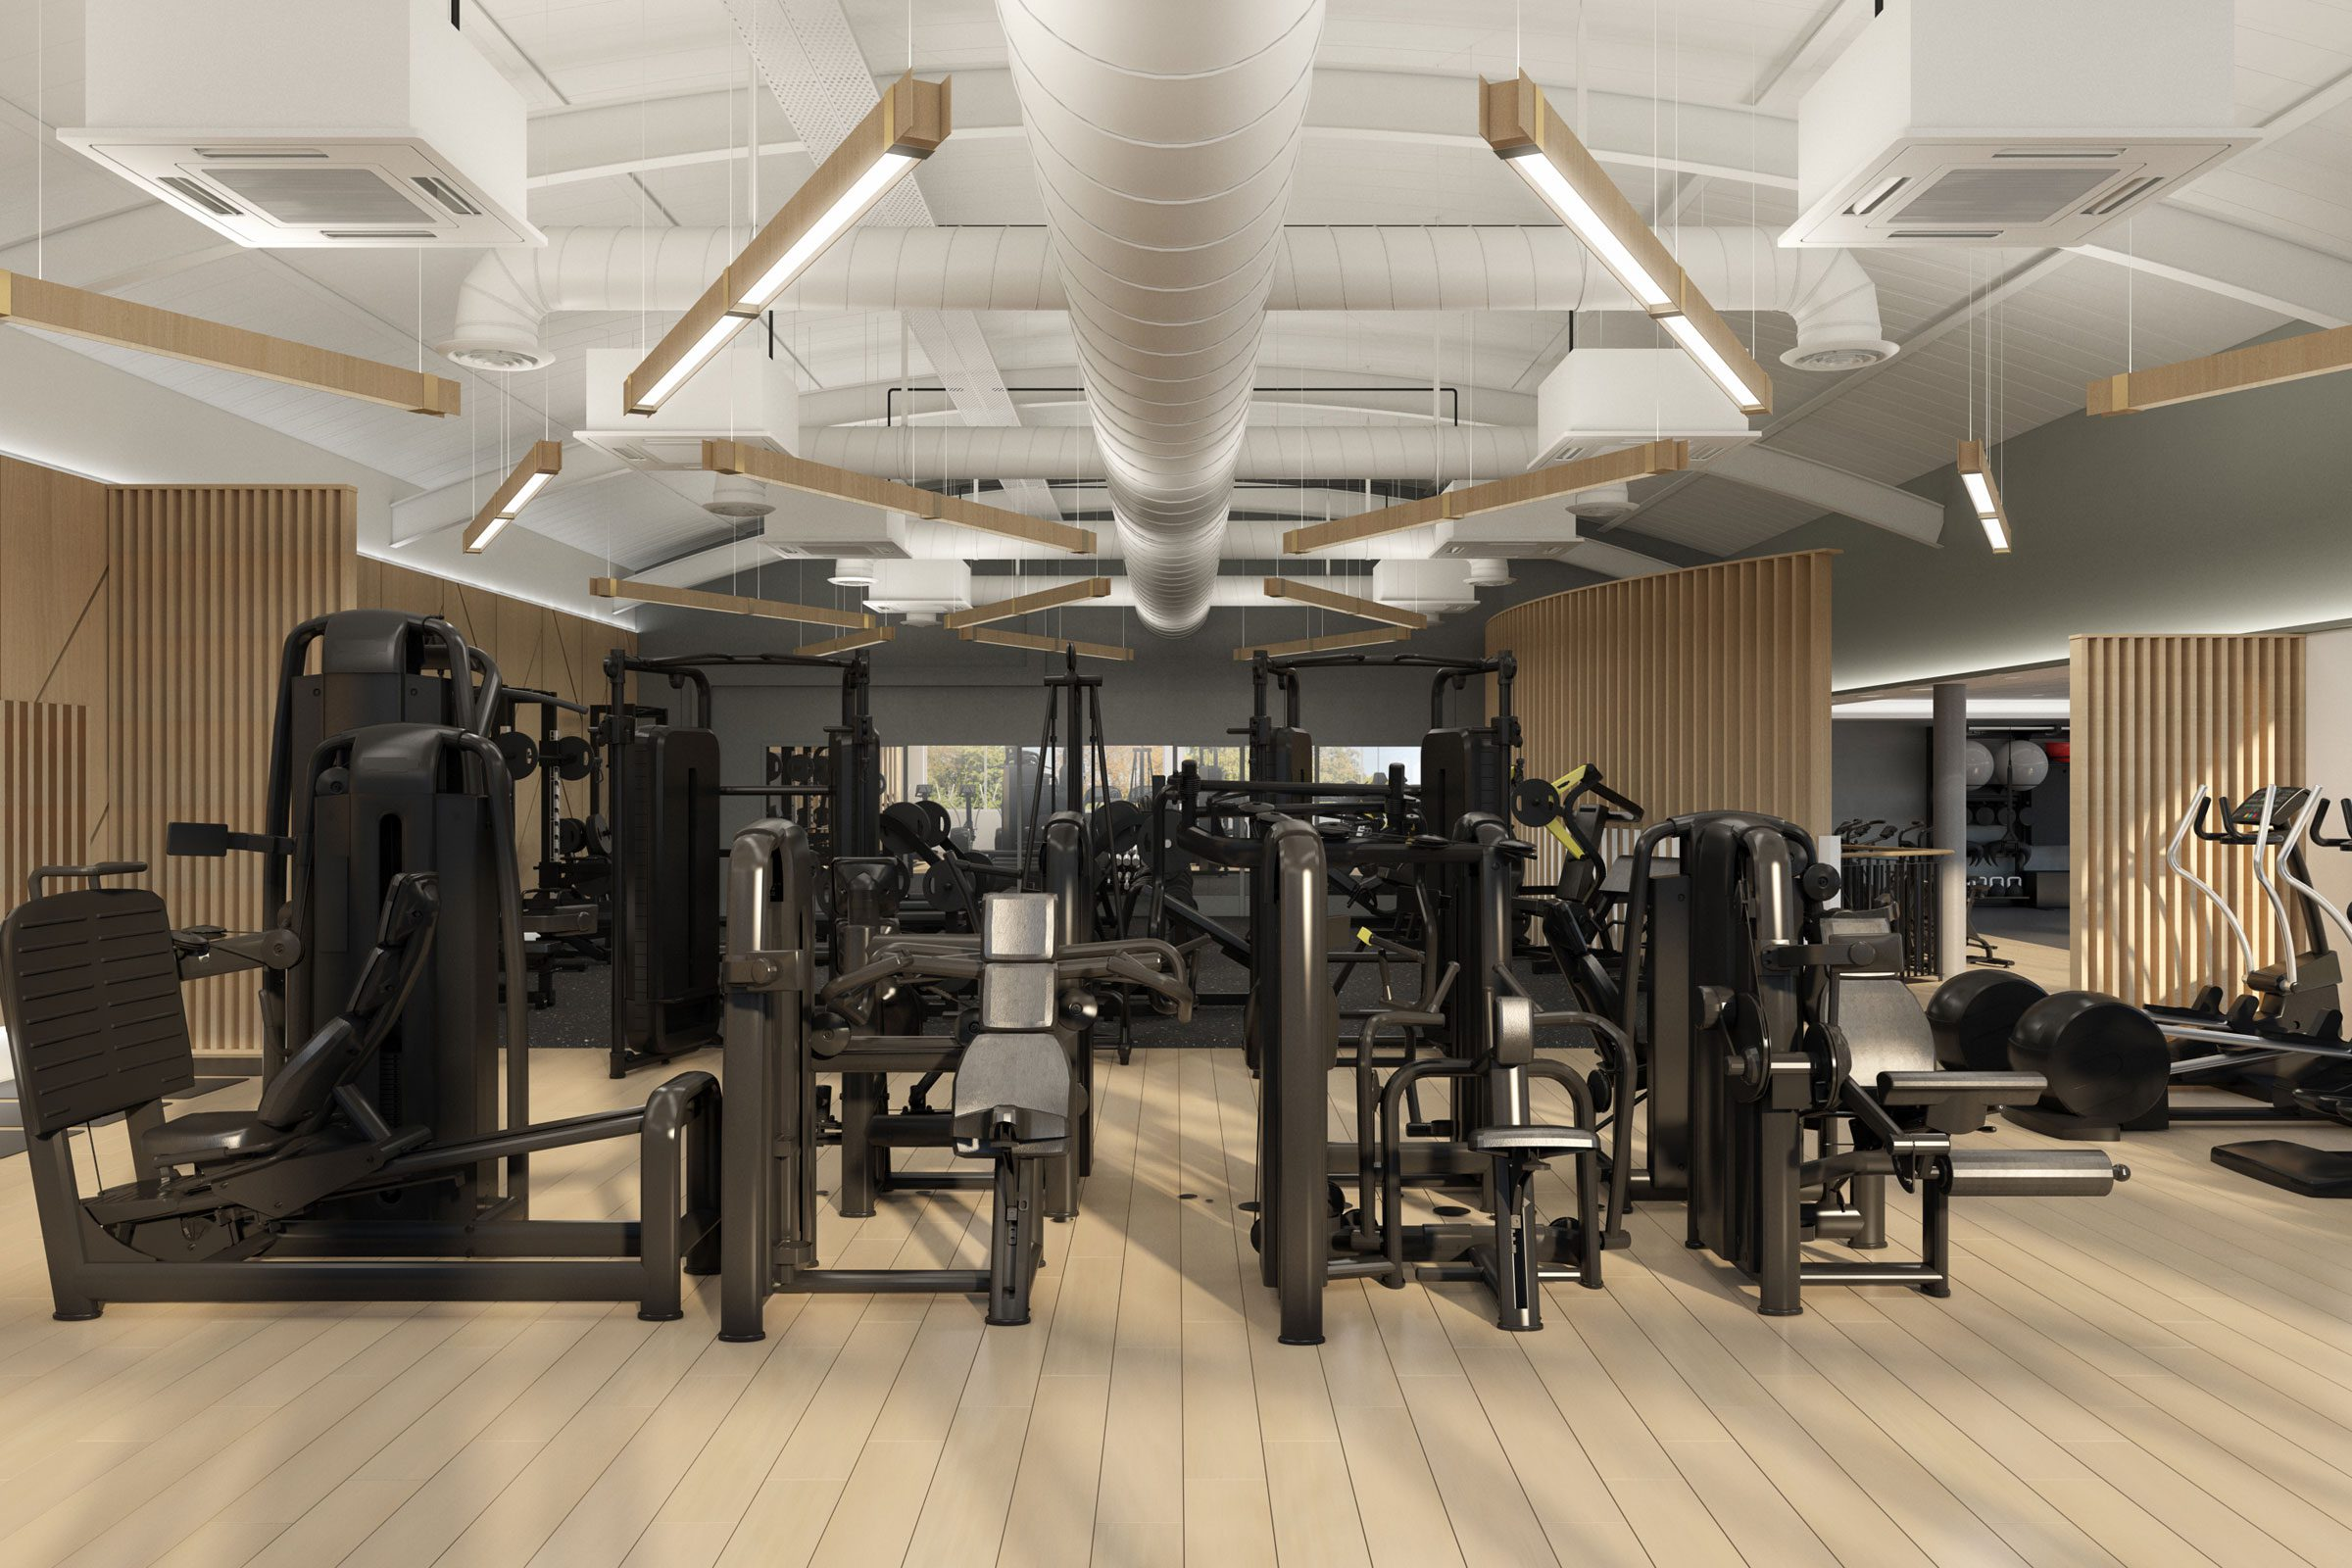 Hotel Fitness Club Architect